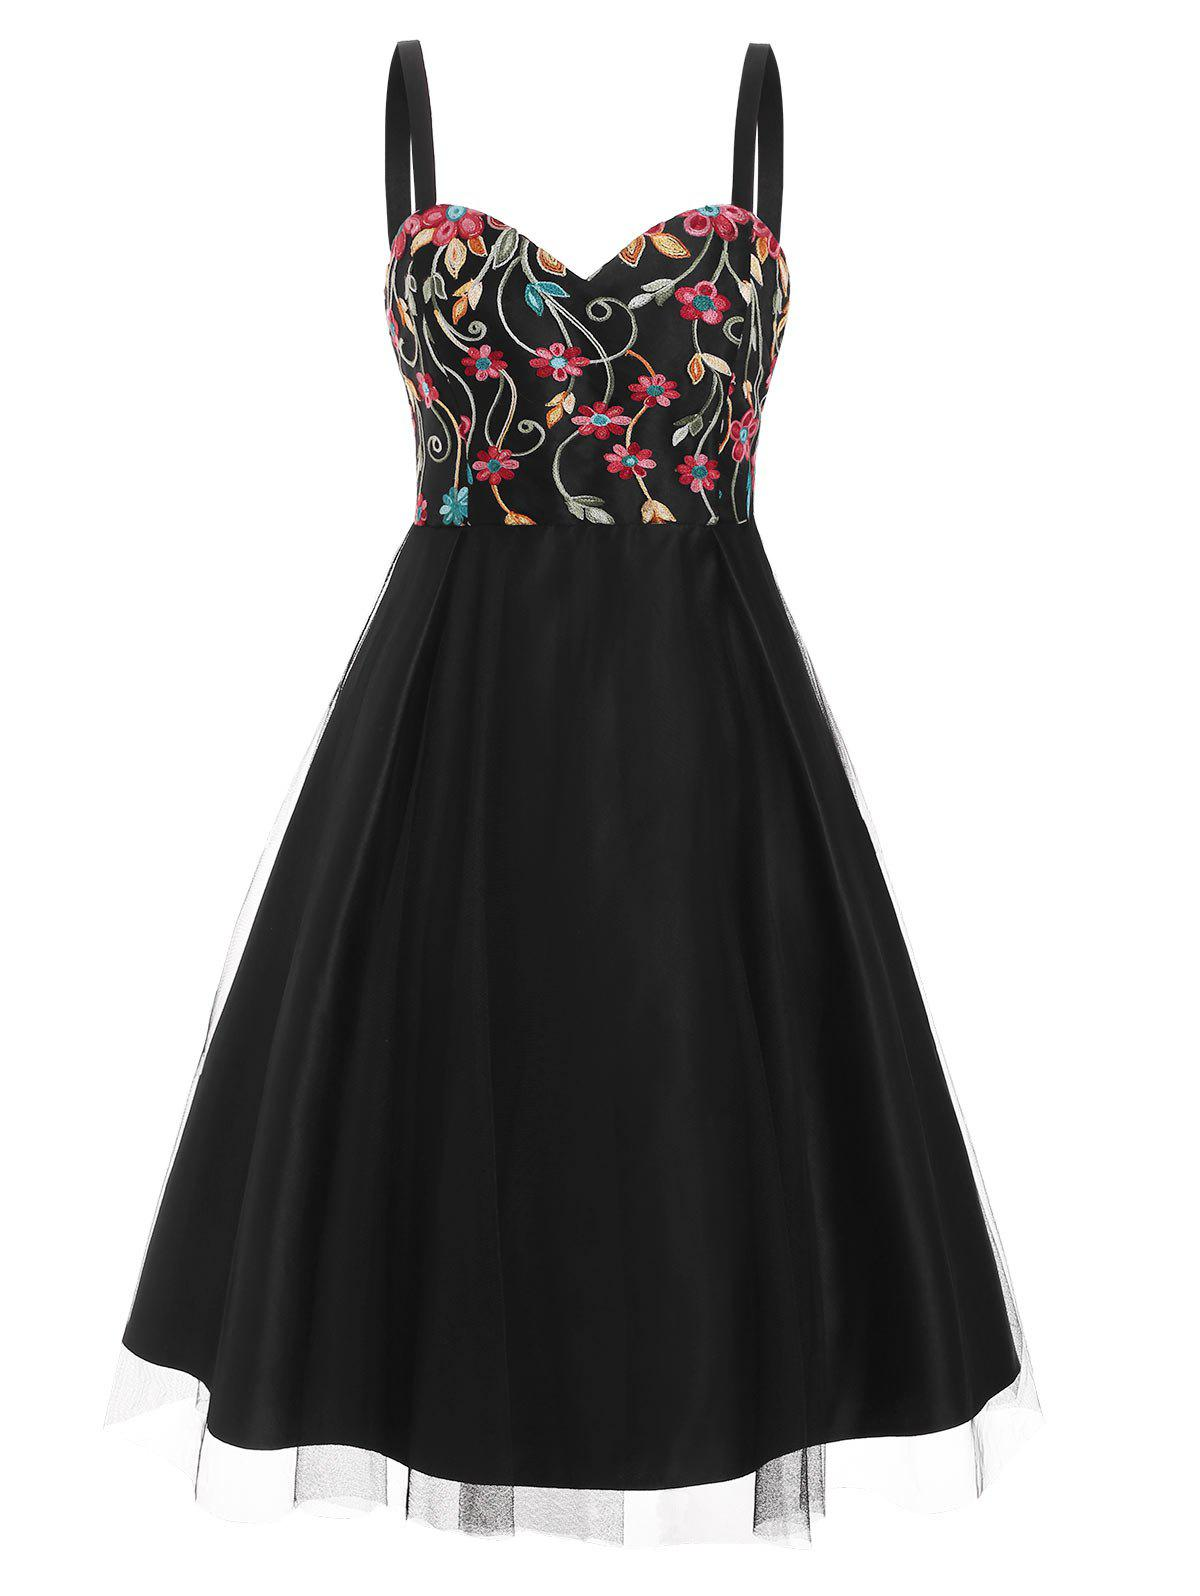 Flower Embroidered Lace Overlay Sweetheart Party Dress - BLACK M